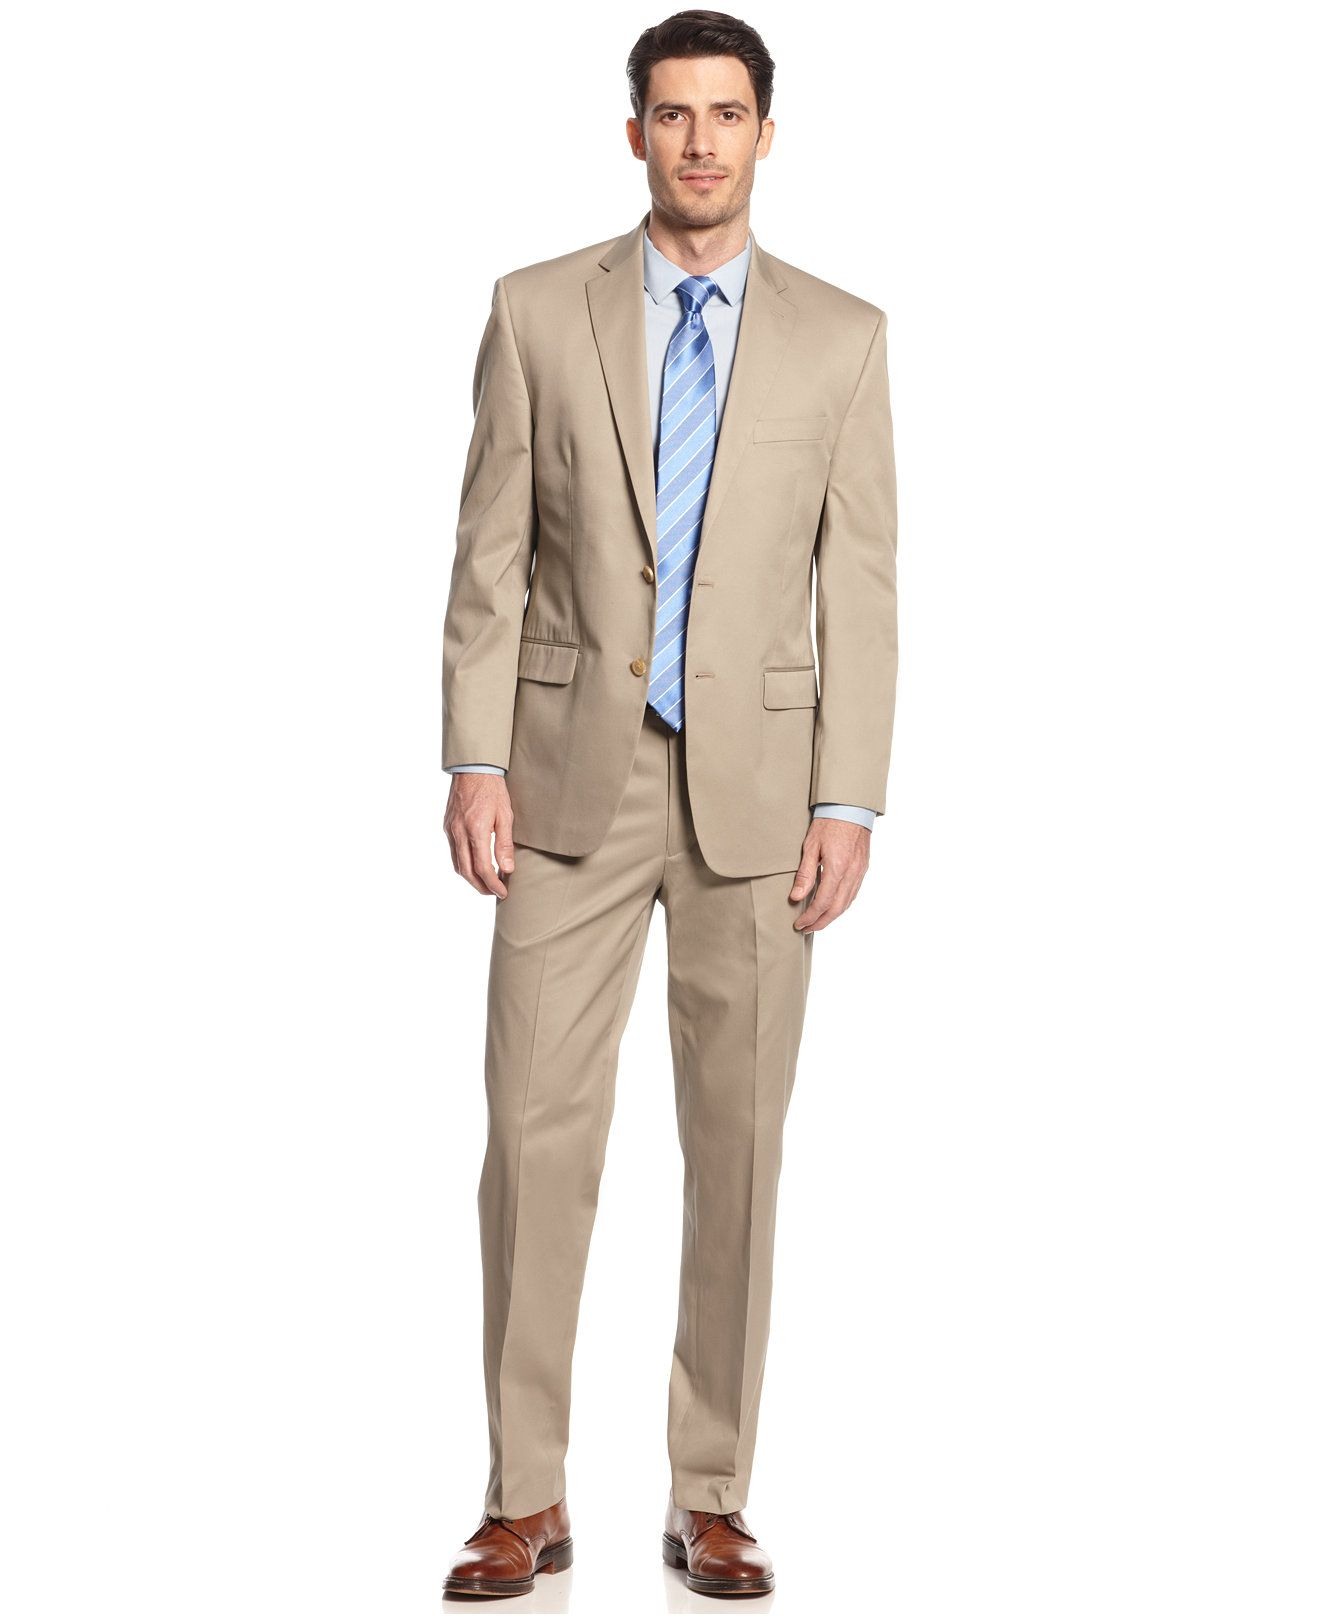 Lauren by Ralph Lauren Tan Solid Cotton Suit Separates - Suits ...